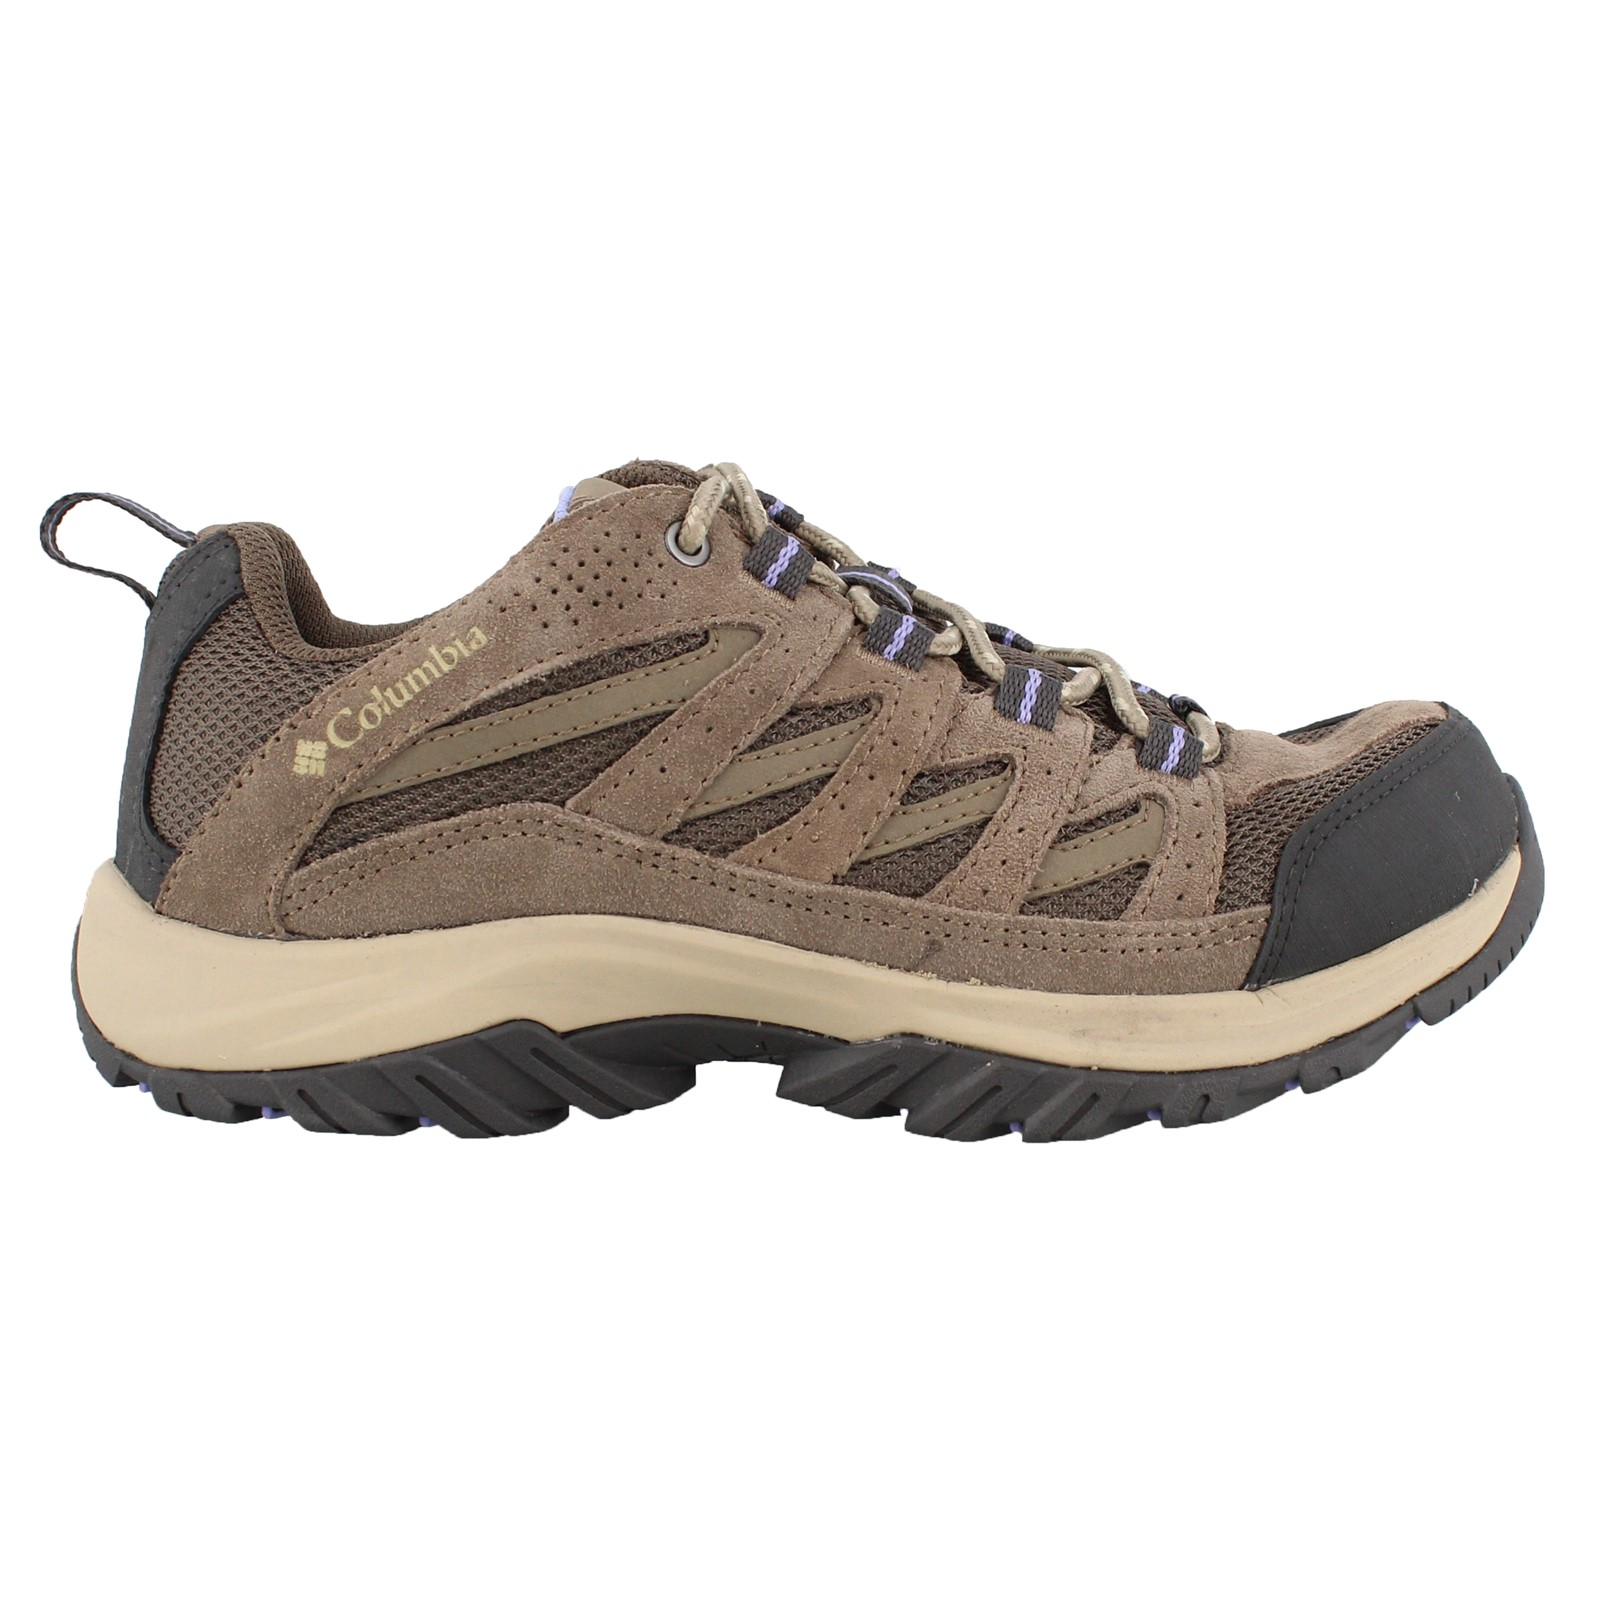 50357e87783 Women's COLUMBIA, CRESTWOOD LOW HIKING SNEAKERS